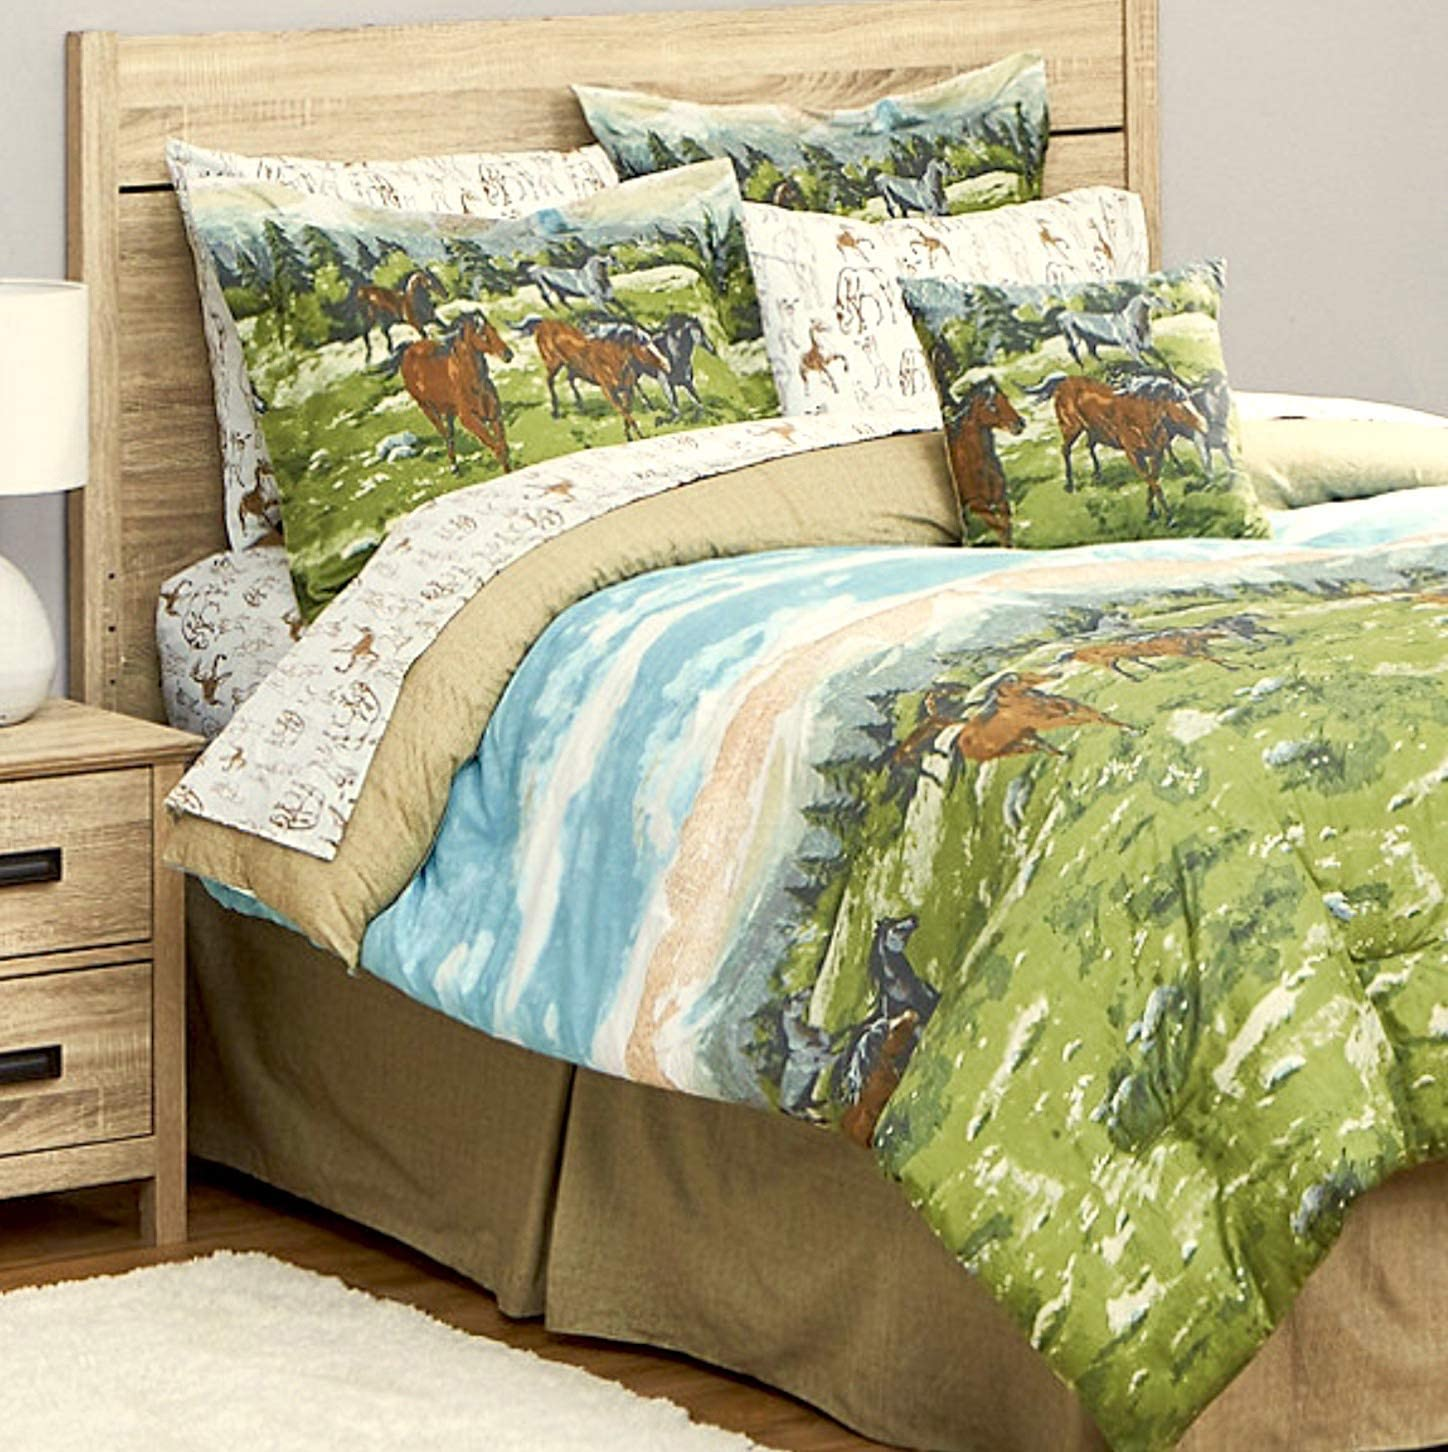 Running Free Horse Theme Comforter Set 即出荷 Bed King Bag 8pc 特価品コーナー☆ Si in a